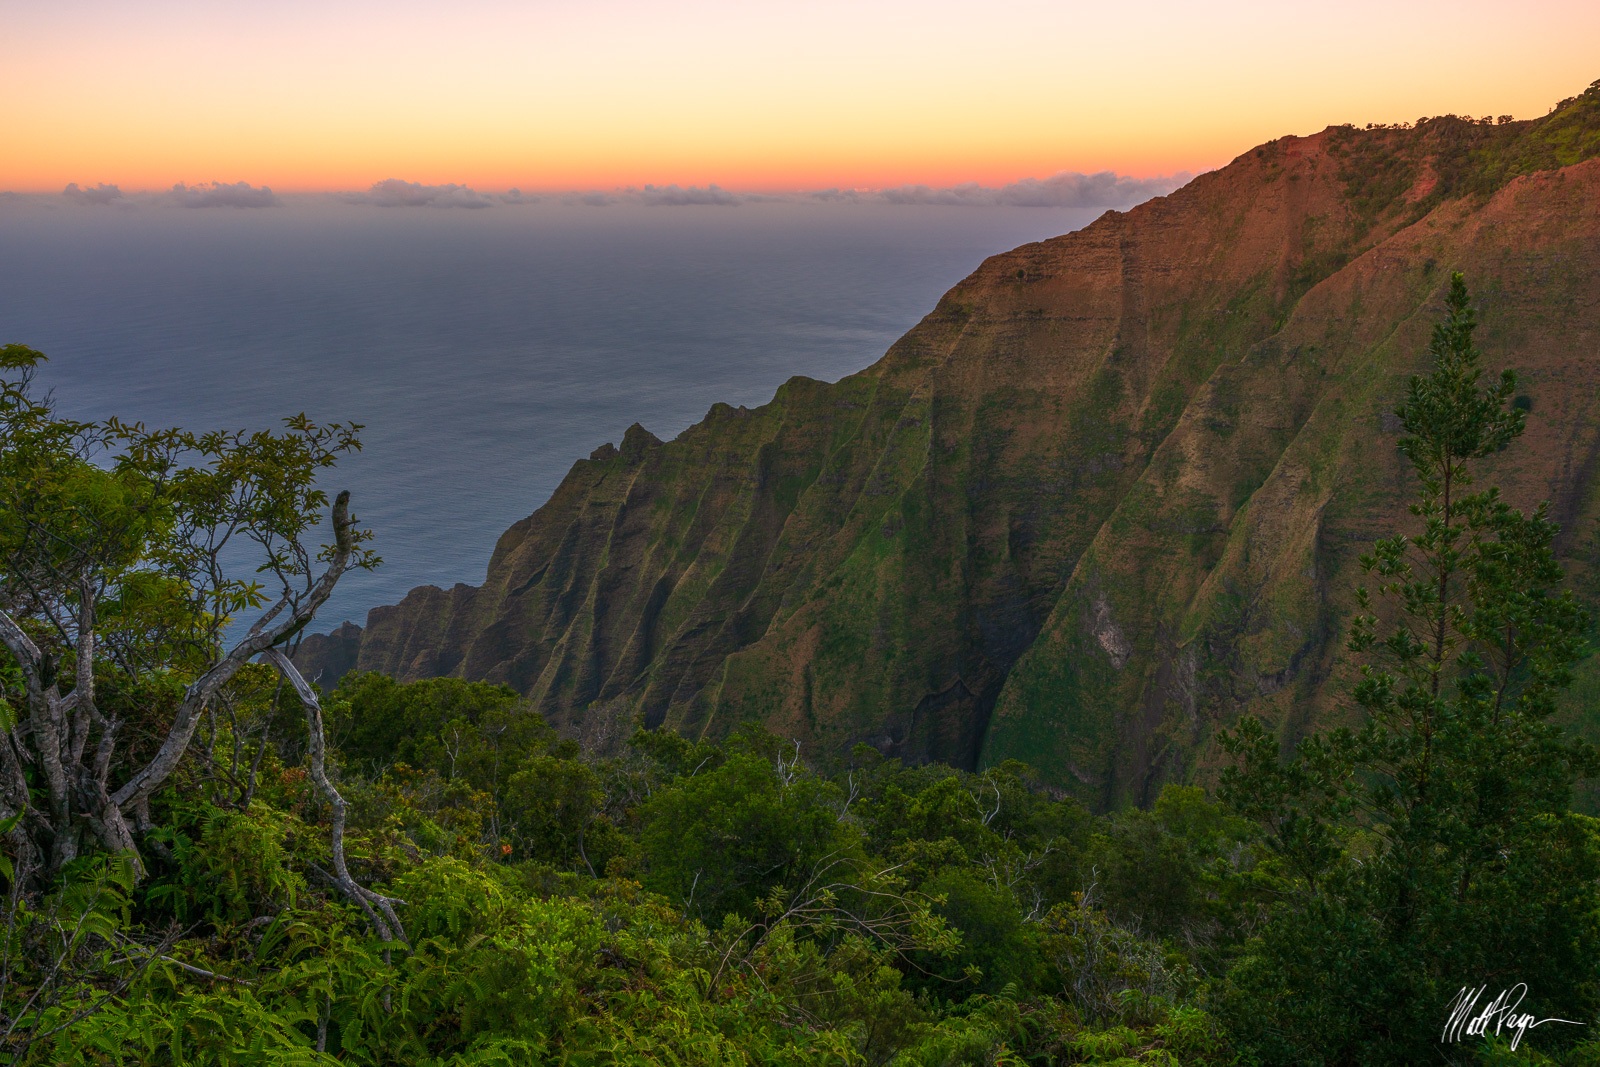 During my trip to Kauai in 2018/2019, I decided to take a solo hike down Honopu Trail to the edge of the Na Pali Coast at sunset...